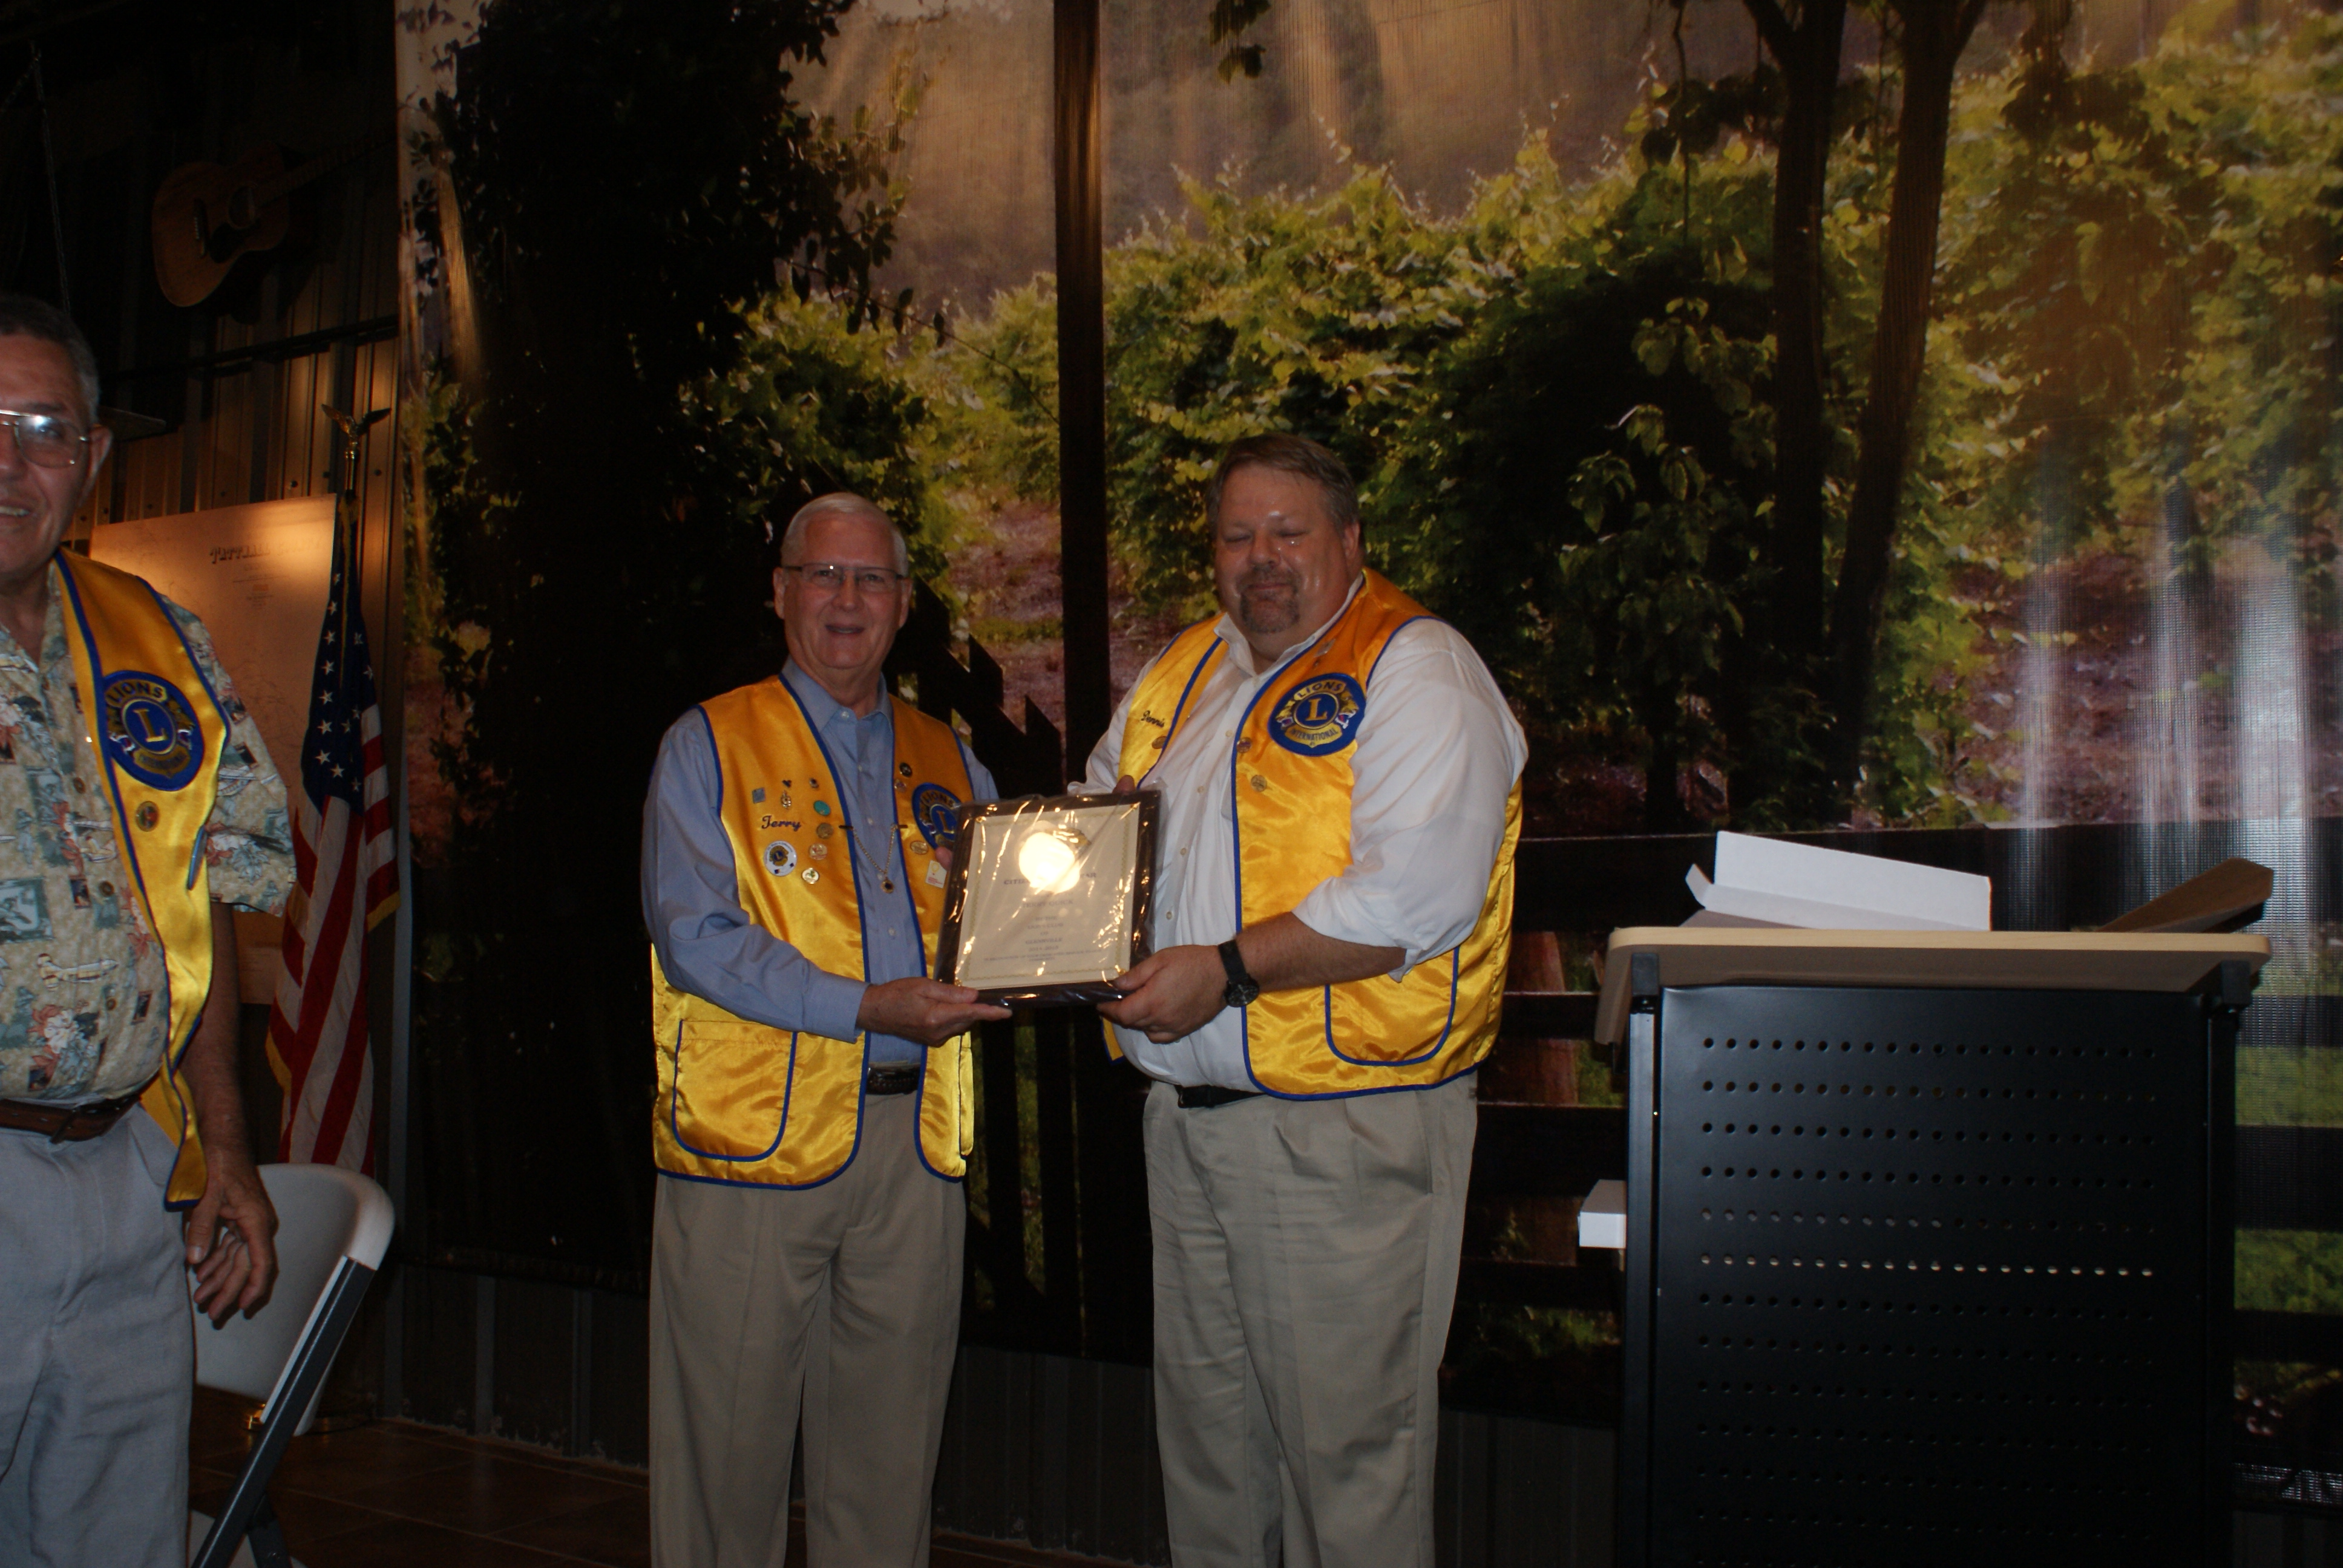 Lion Terry Quick, Glennville Lions Club Citizen of TheYear 2014-2015